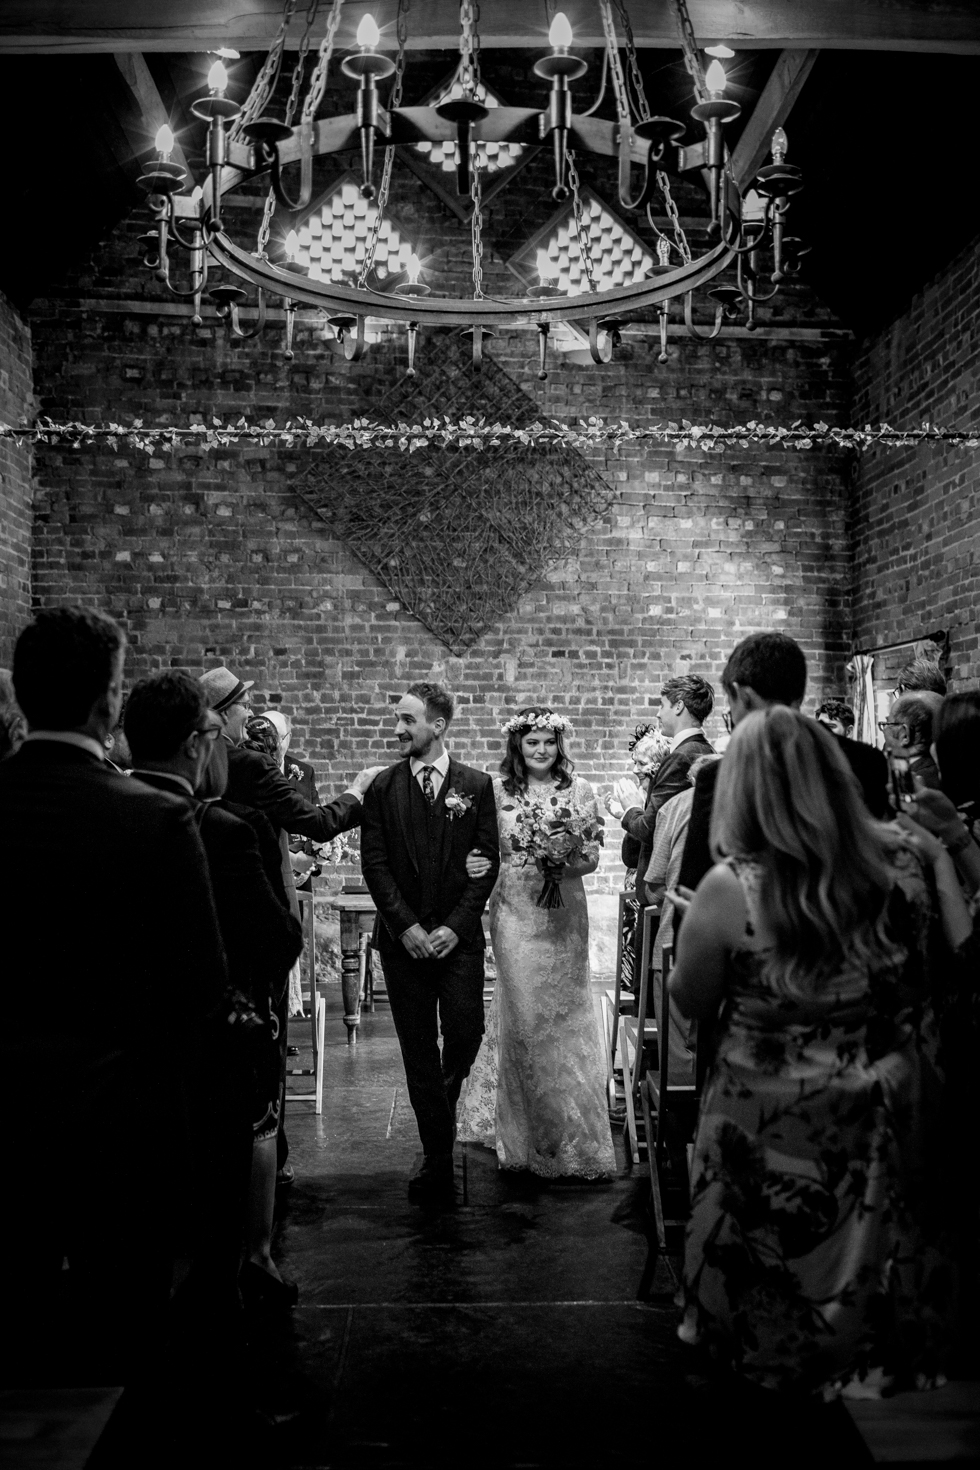 bride and groom walking out of the wedding room after just getting married